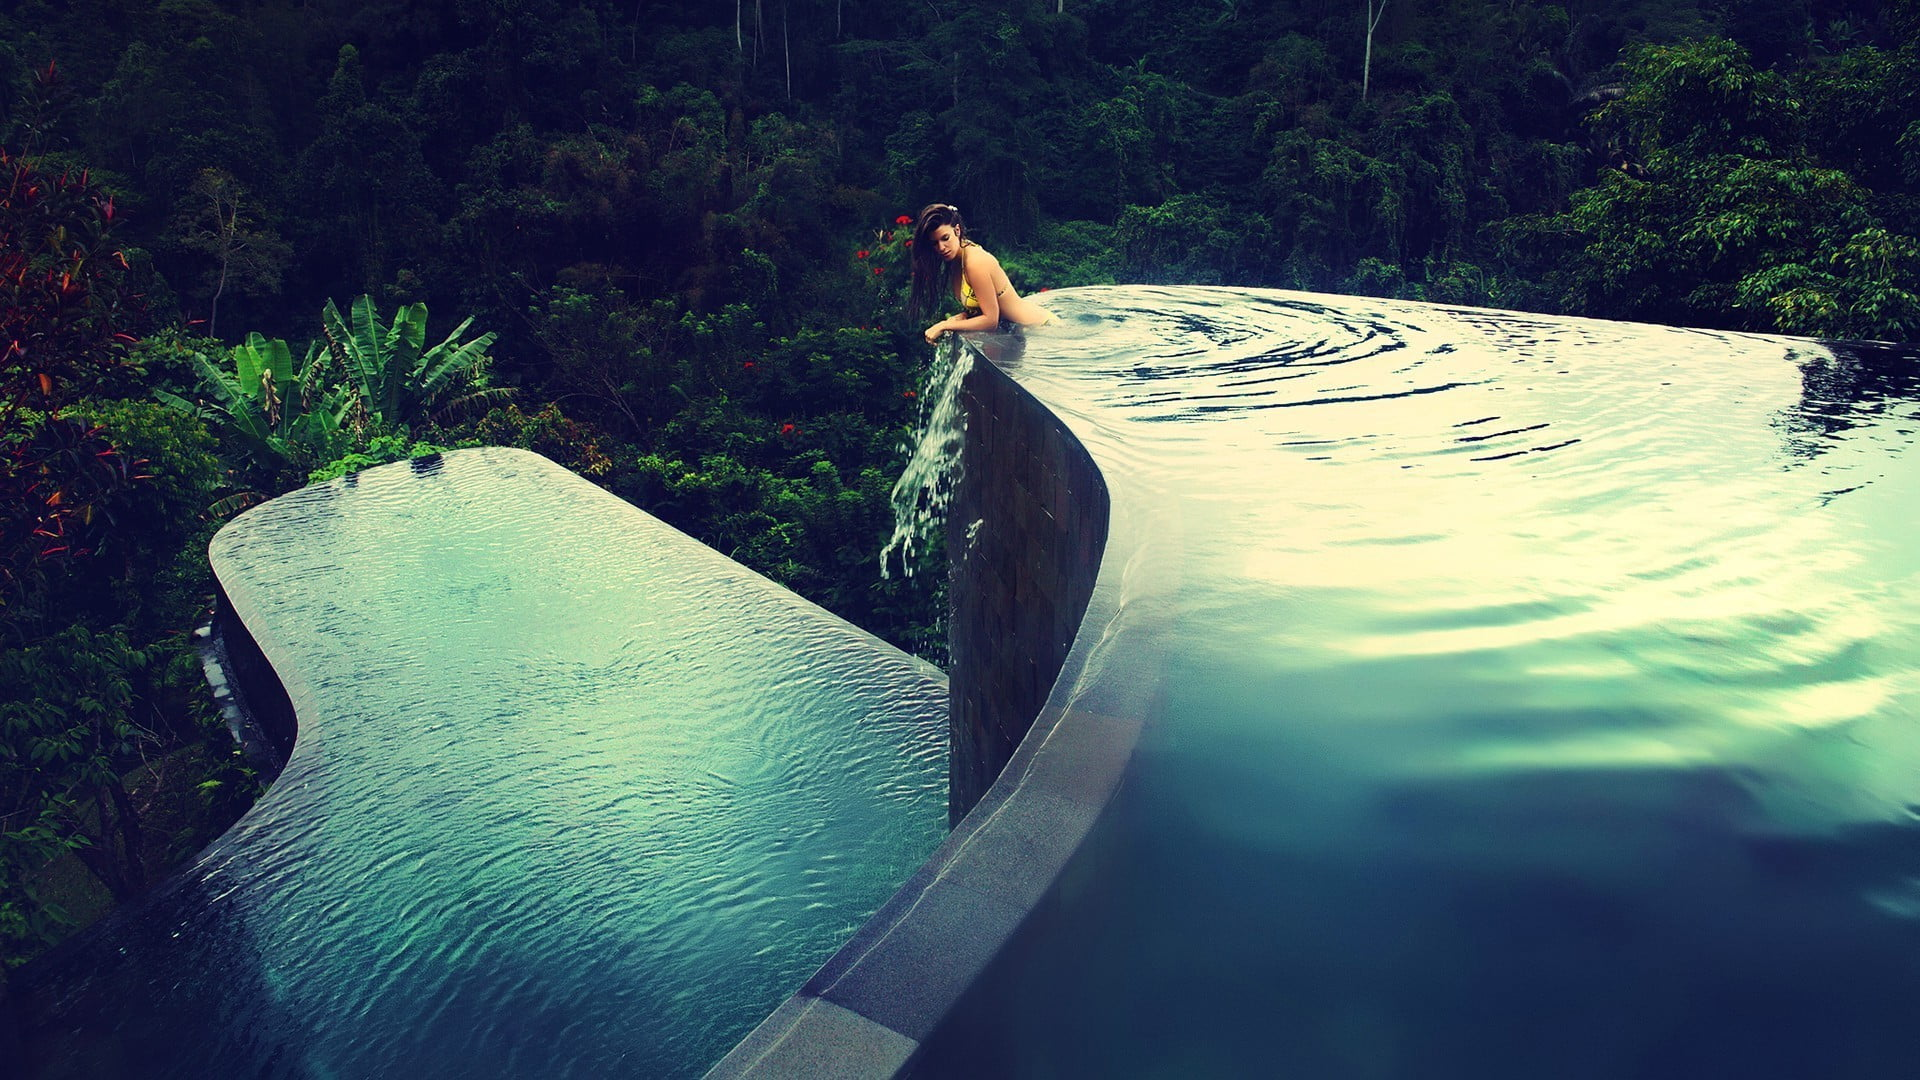 Woman submerged in infinity pool HD wallpaper Wallpaper Flare 1920x1080